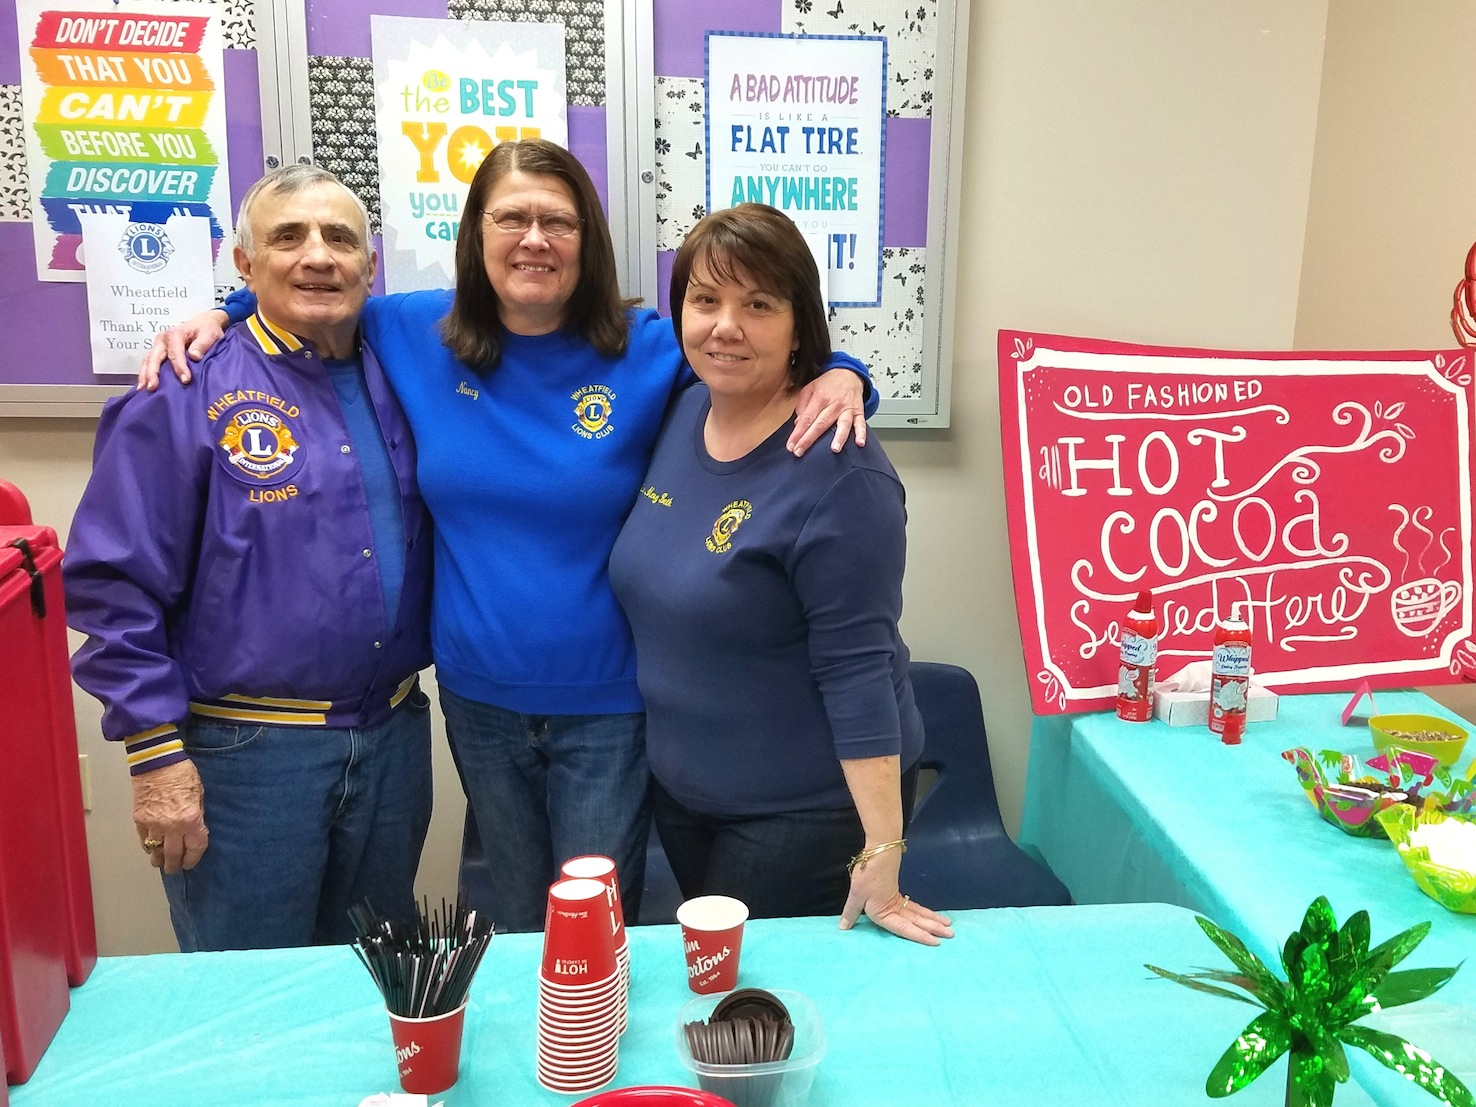 Lions Bill Ross, Nancy Rosie, Mary Beth Long (all pictured) and also Lions Walt Garrow (Wheatfield chapter president) and Roberta O'Toole helped serve hot cocoa to the Wheatfield Winterfest attendees. (Photos submitted by Justin Higner)